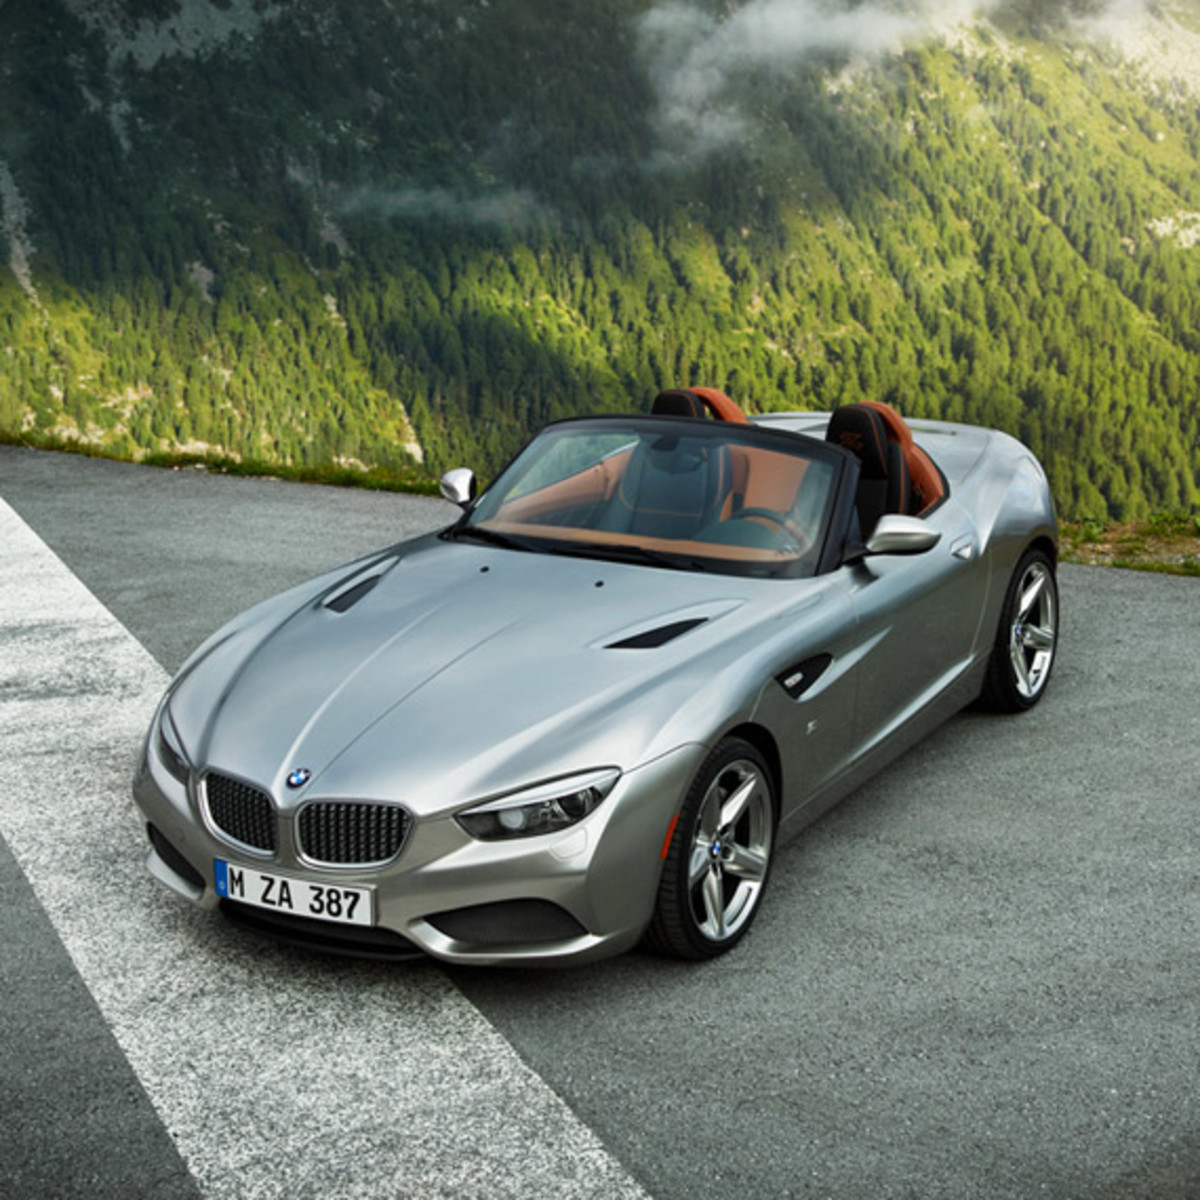 bmw-zagato-roadster-07